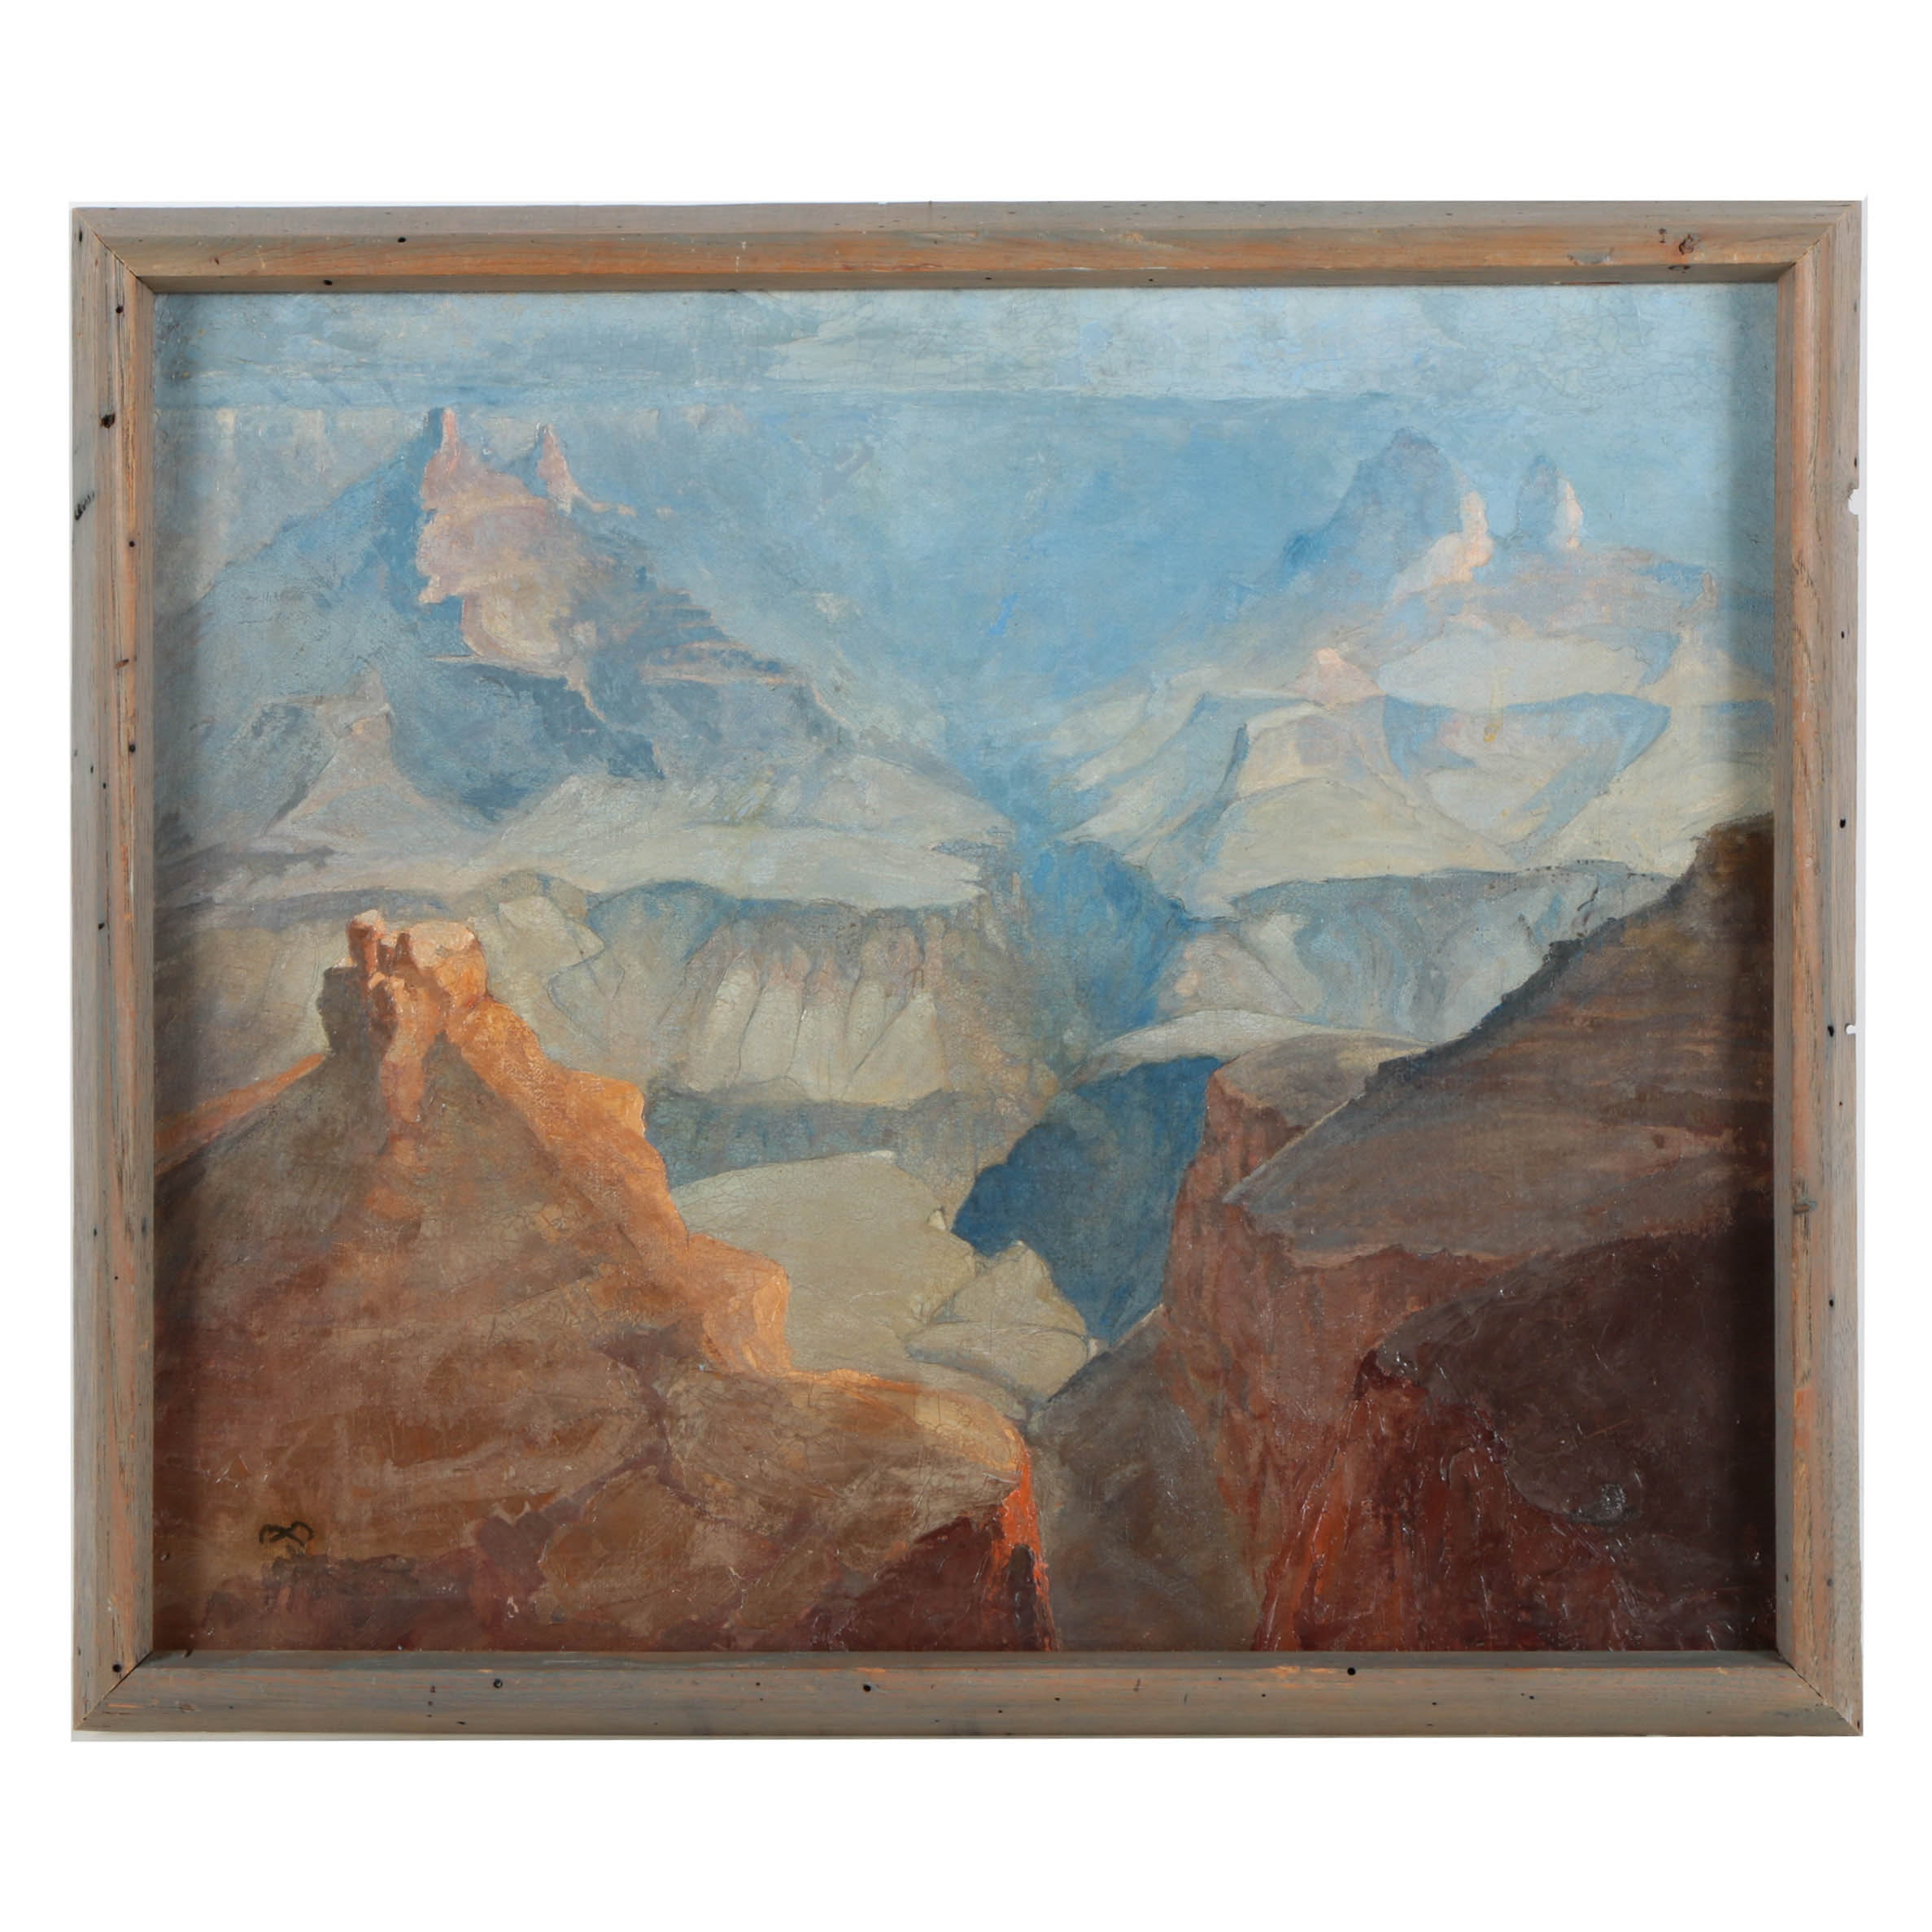 Attributed to Xavier Martinez Oil Painting on Canvas Grand Canyon